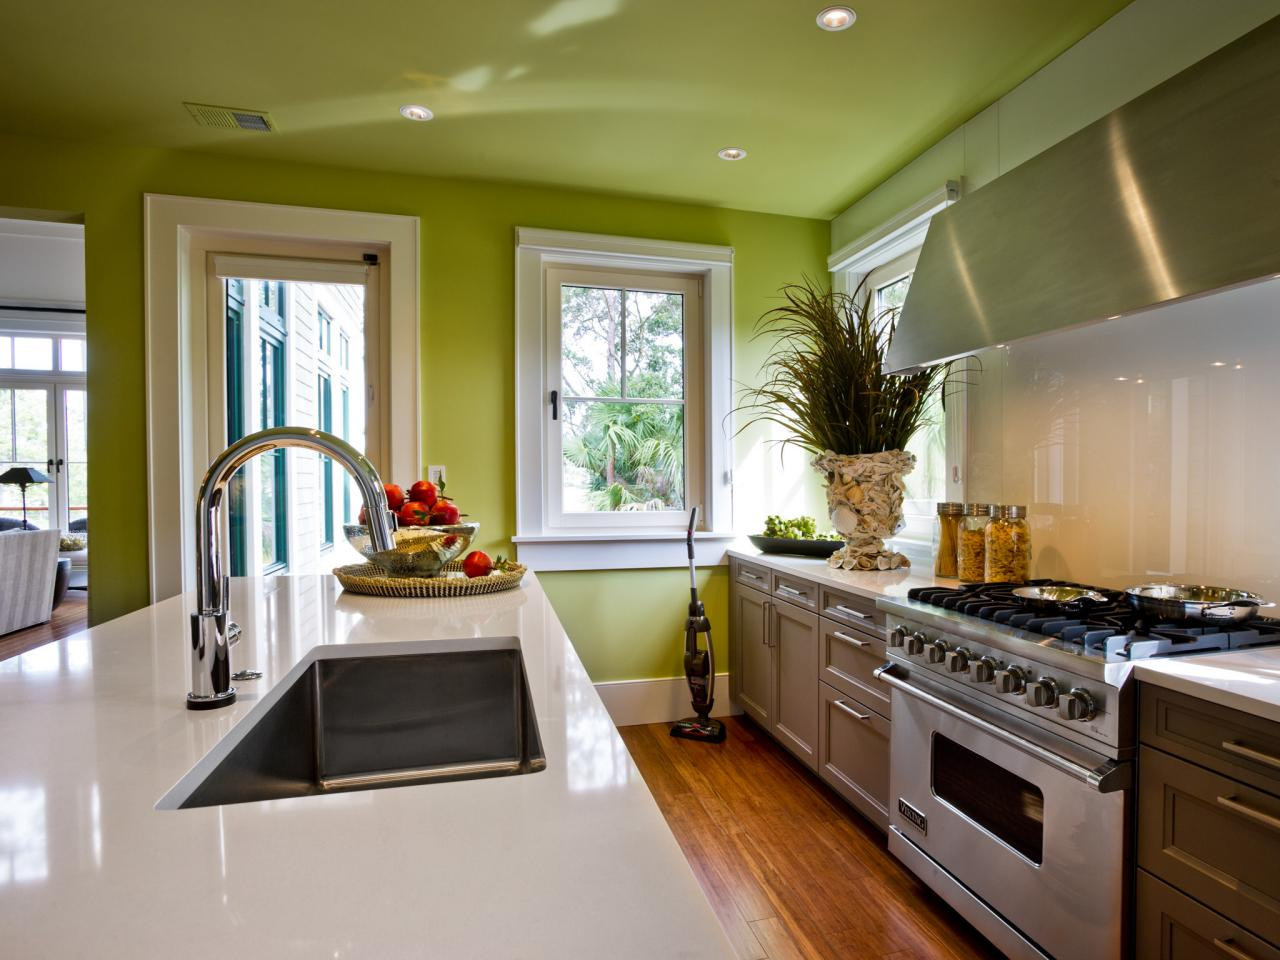 Paint colors for kitchens pictures ideas tips from for Kitchen color planner